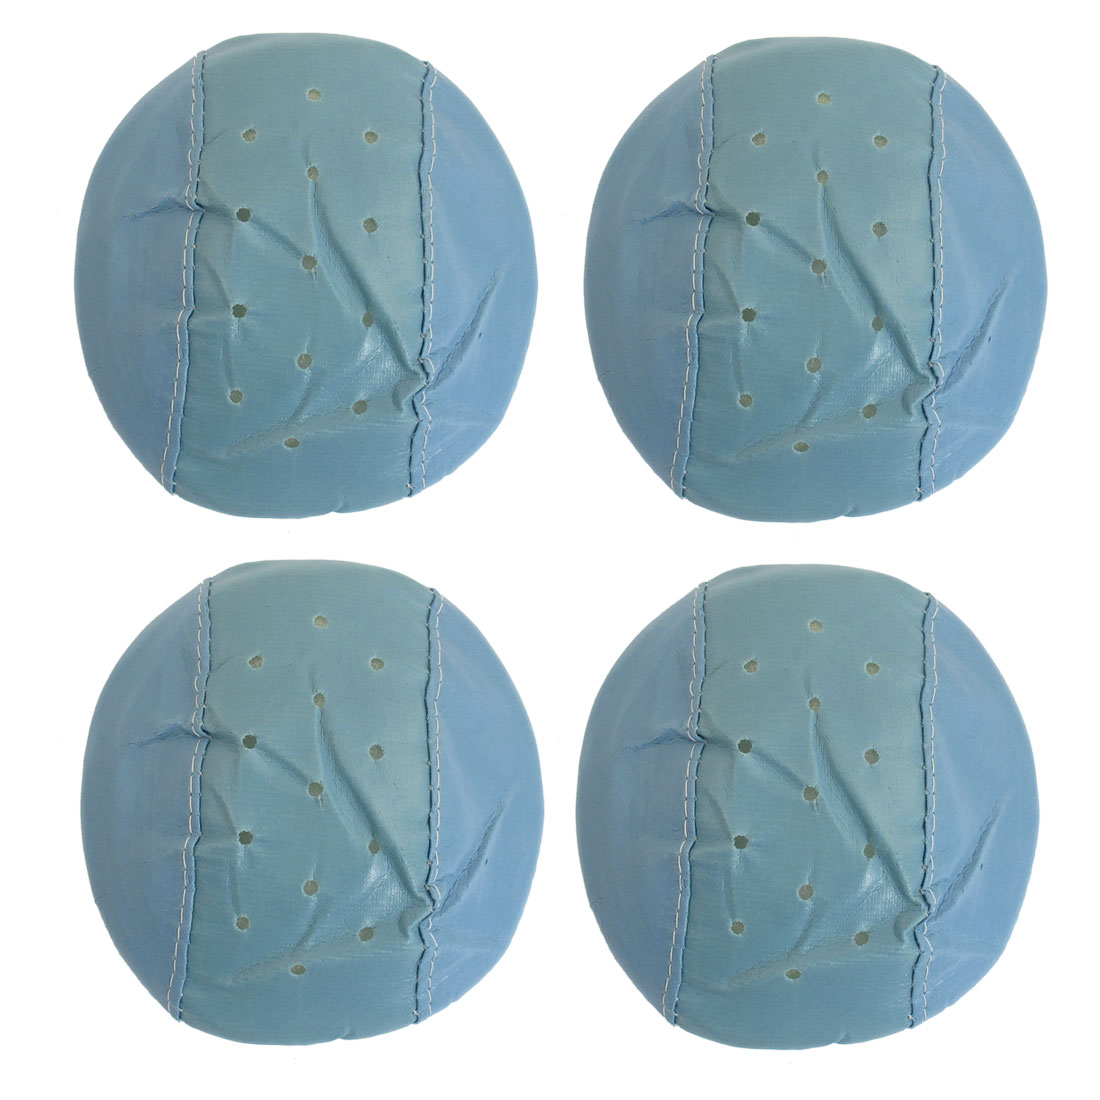 4 Pcs Blue Cover Sponge Elastic Ear Loop Anti Dust Face Mask for Adult